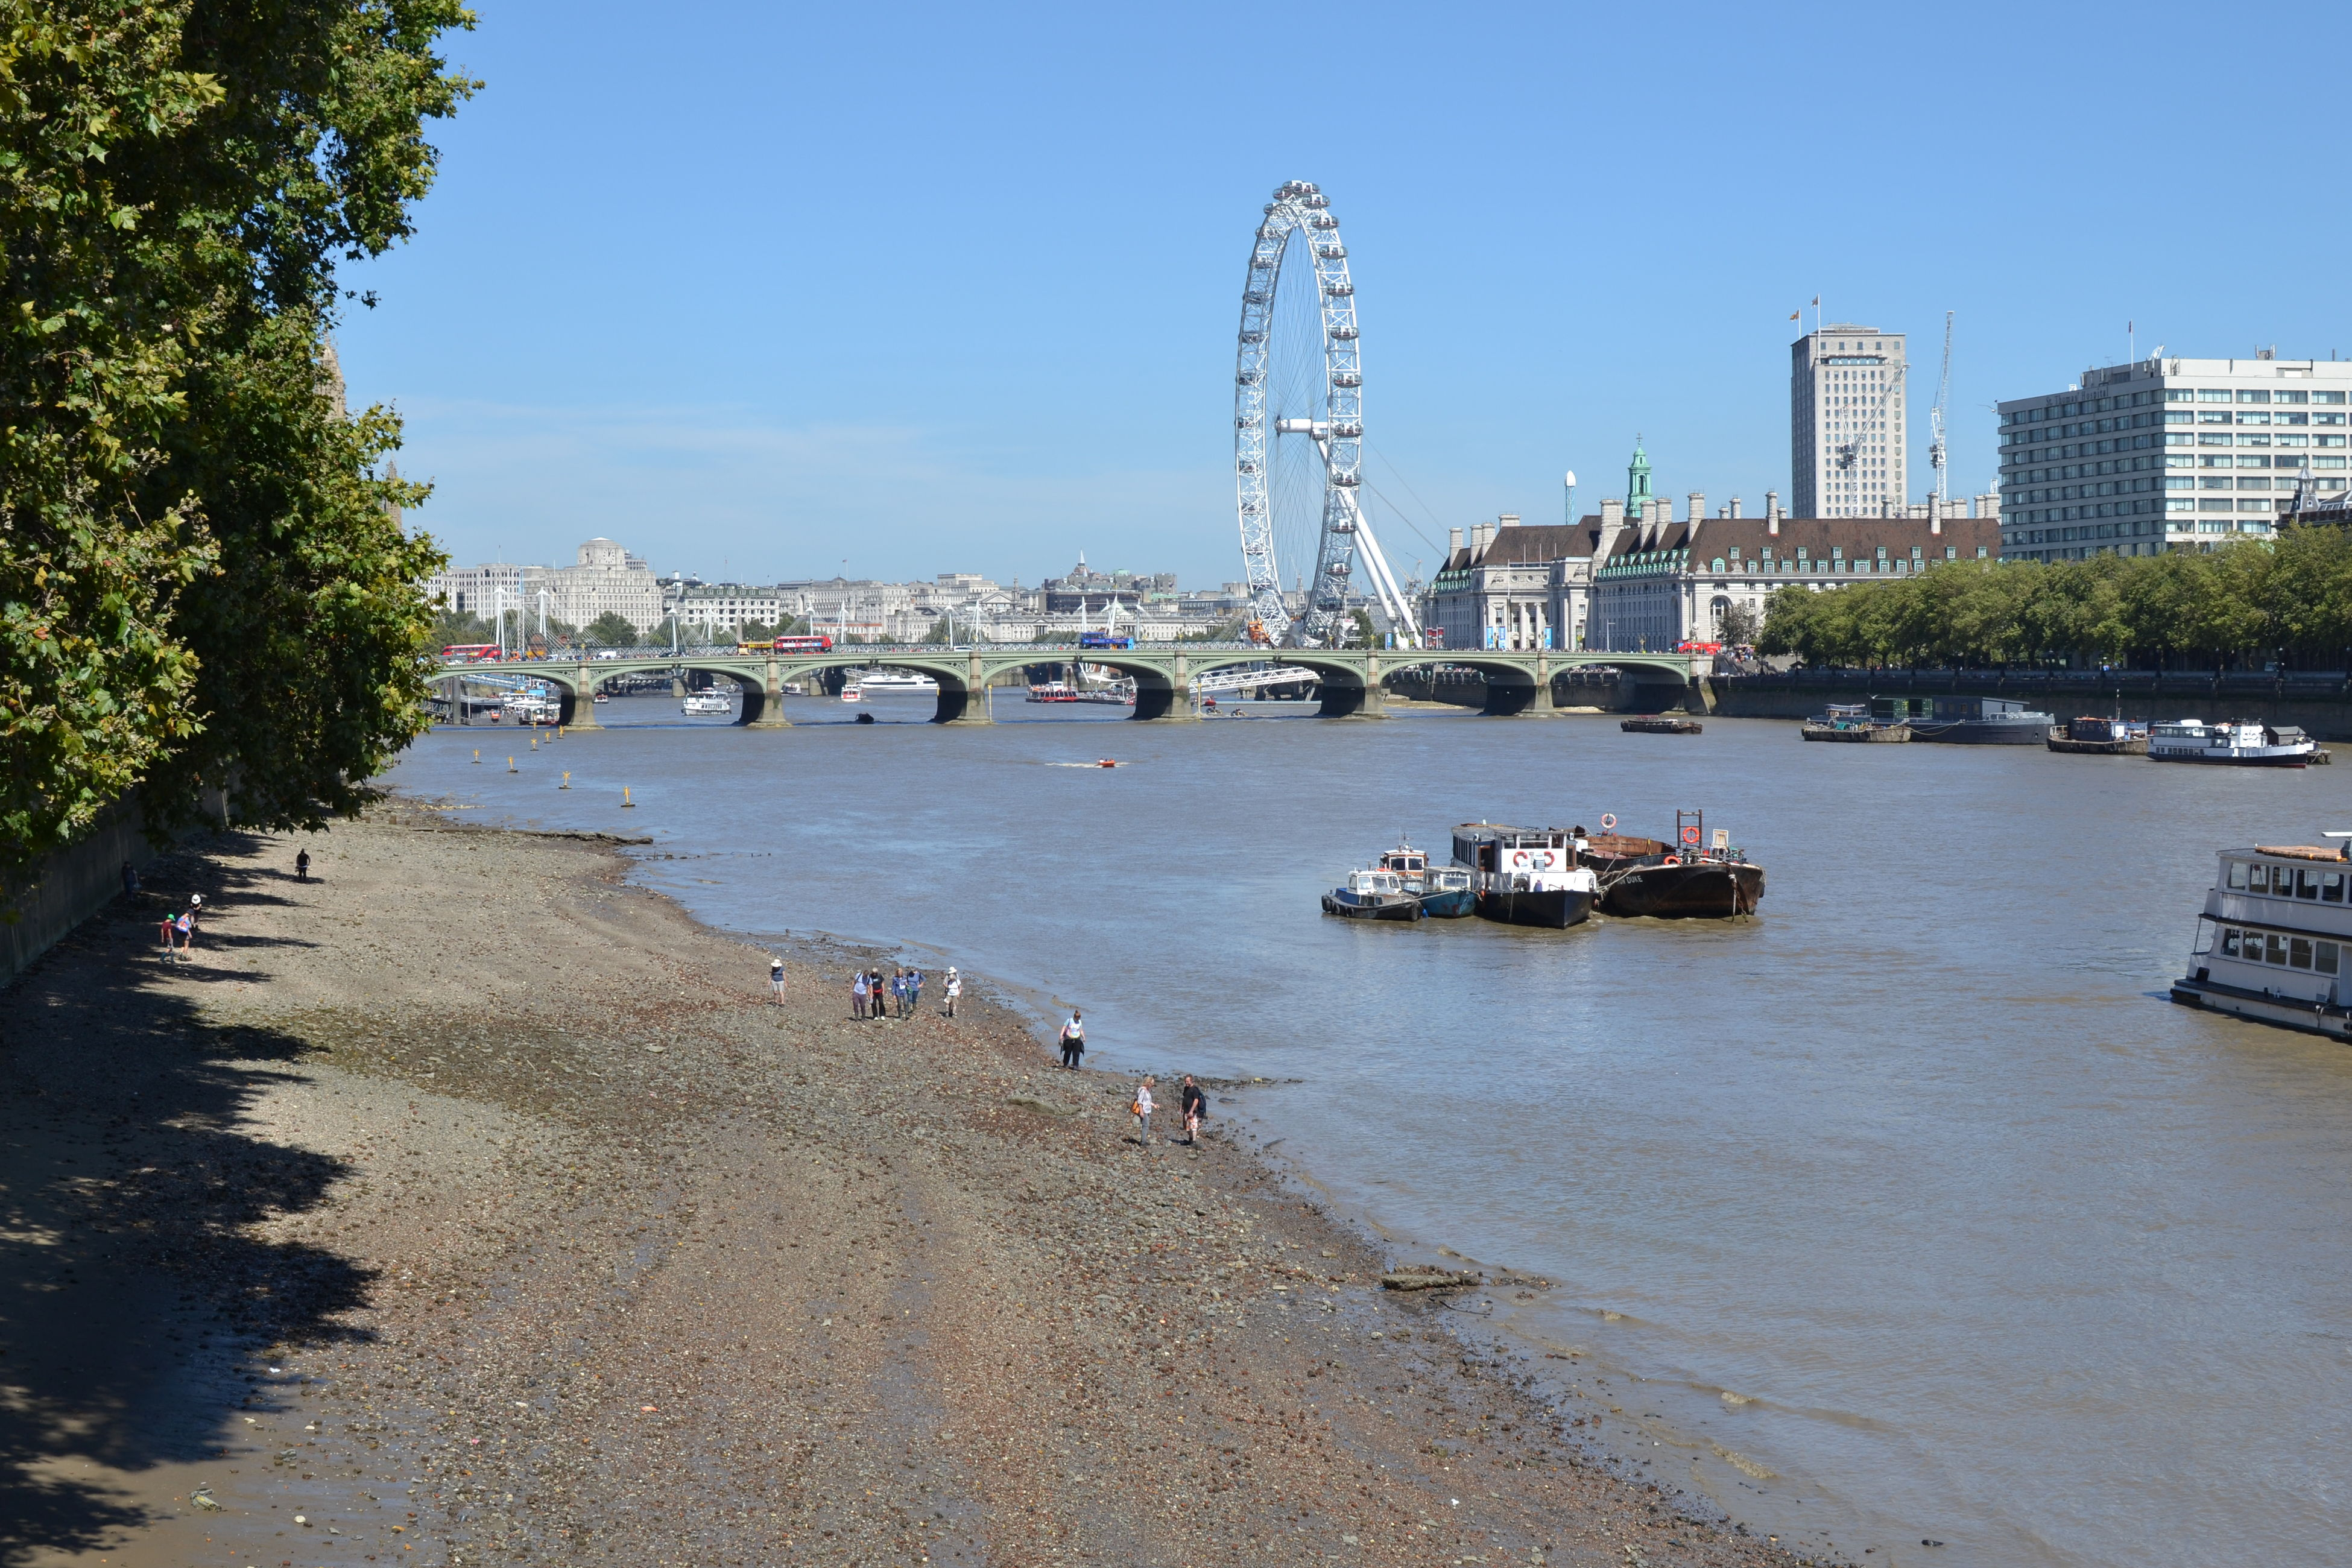 River Thames Low Tide On Thames People In Water Space Sand And Pebbles Summer Days